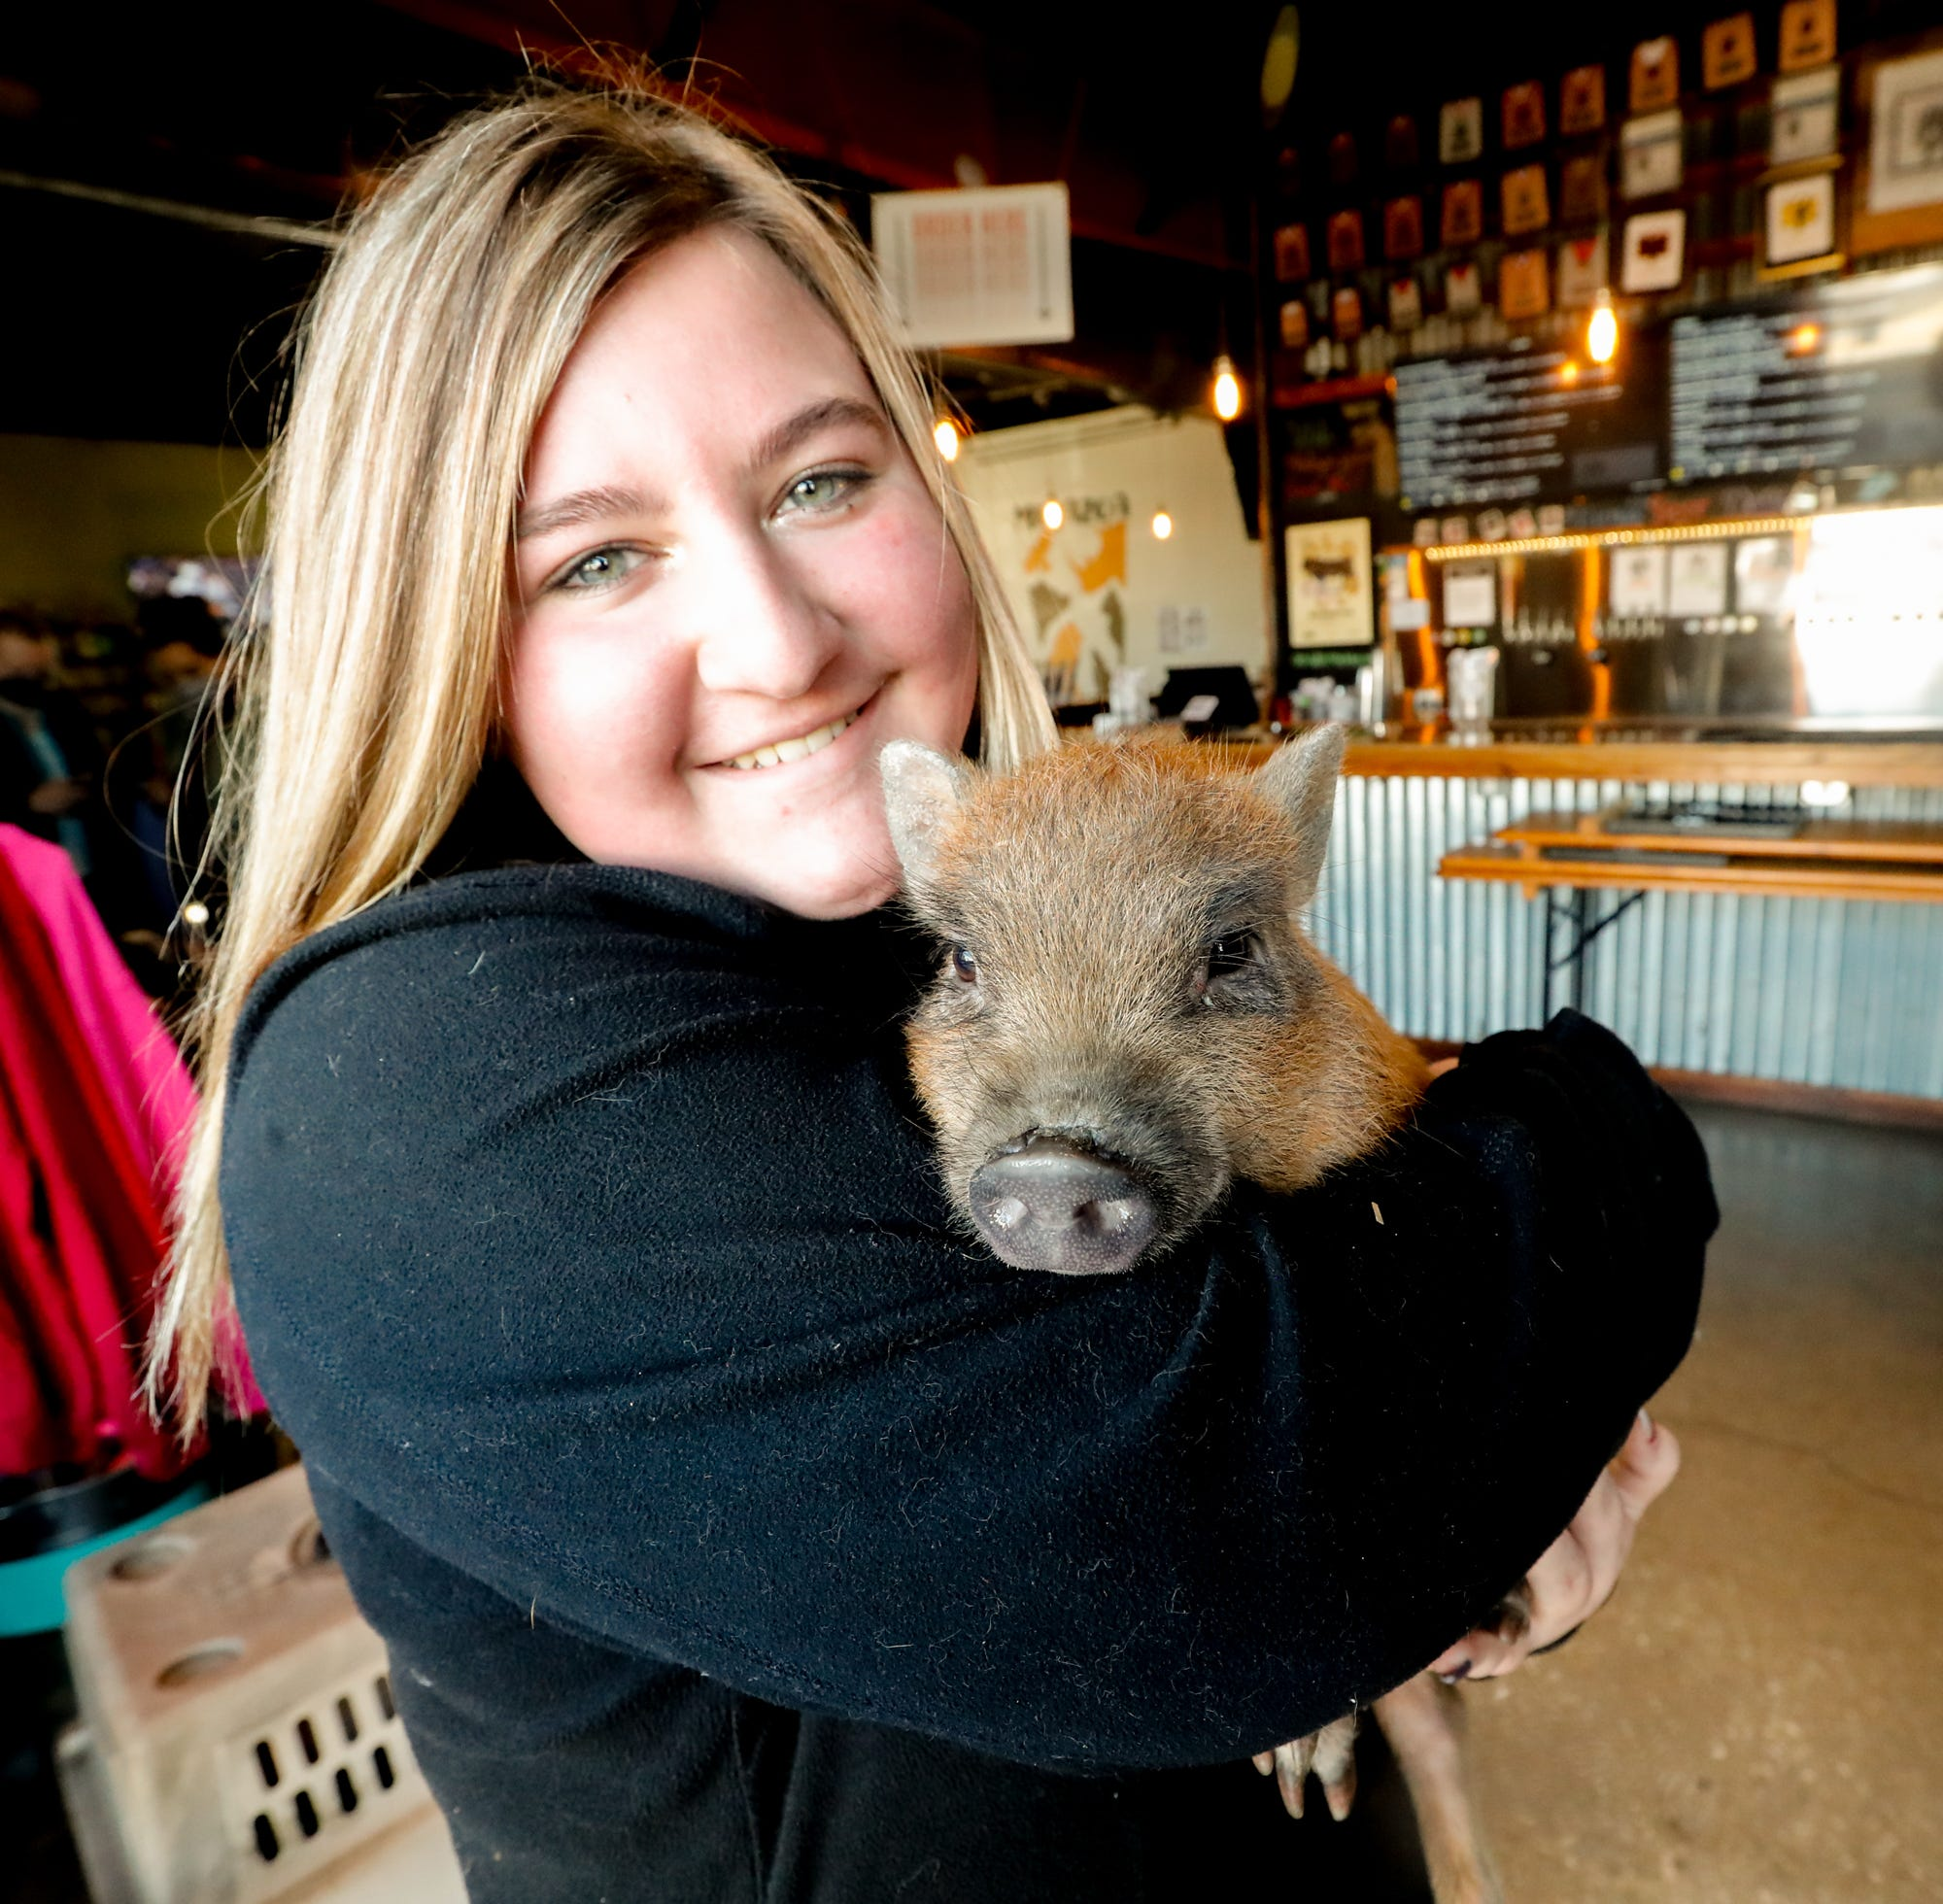 Adoptable 'Pig Yoga' at Metazoa Brewing Co. with Oinking Acres